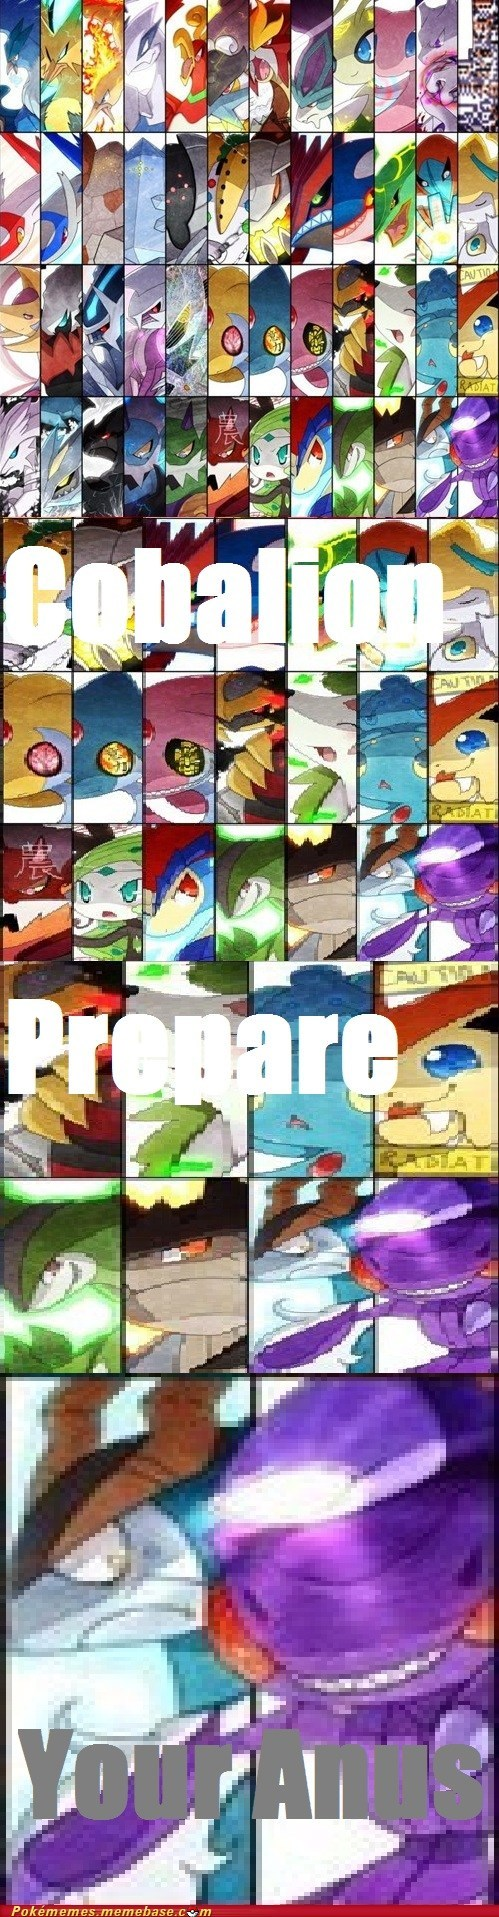 Is Genesect the new Metagross?